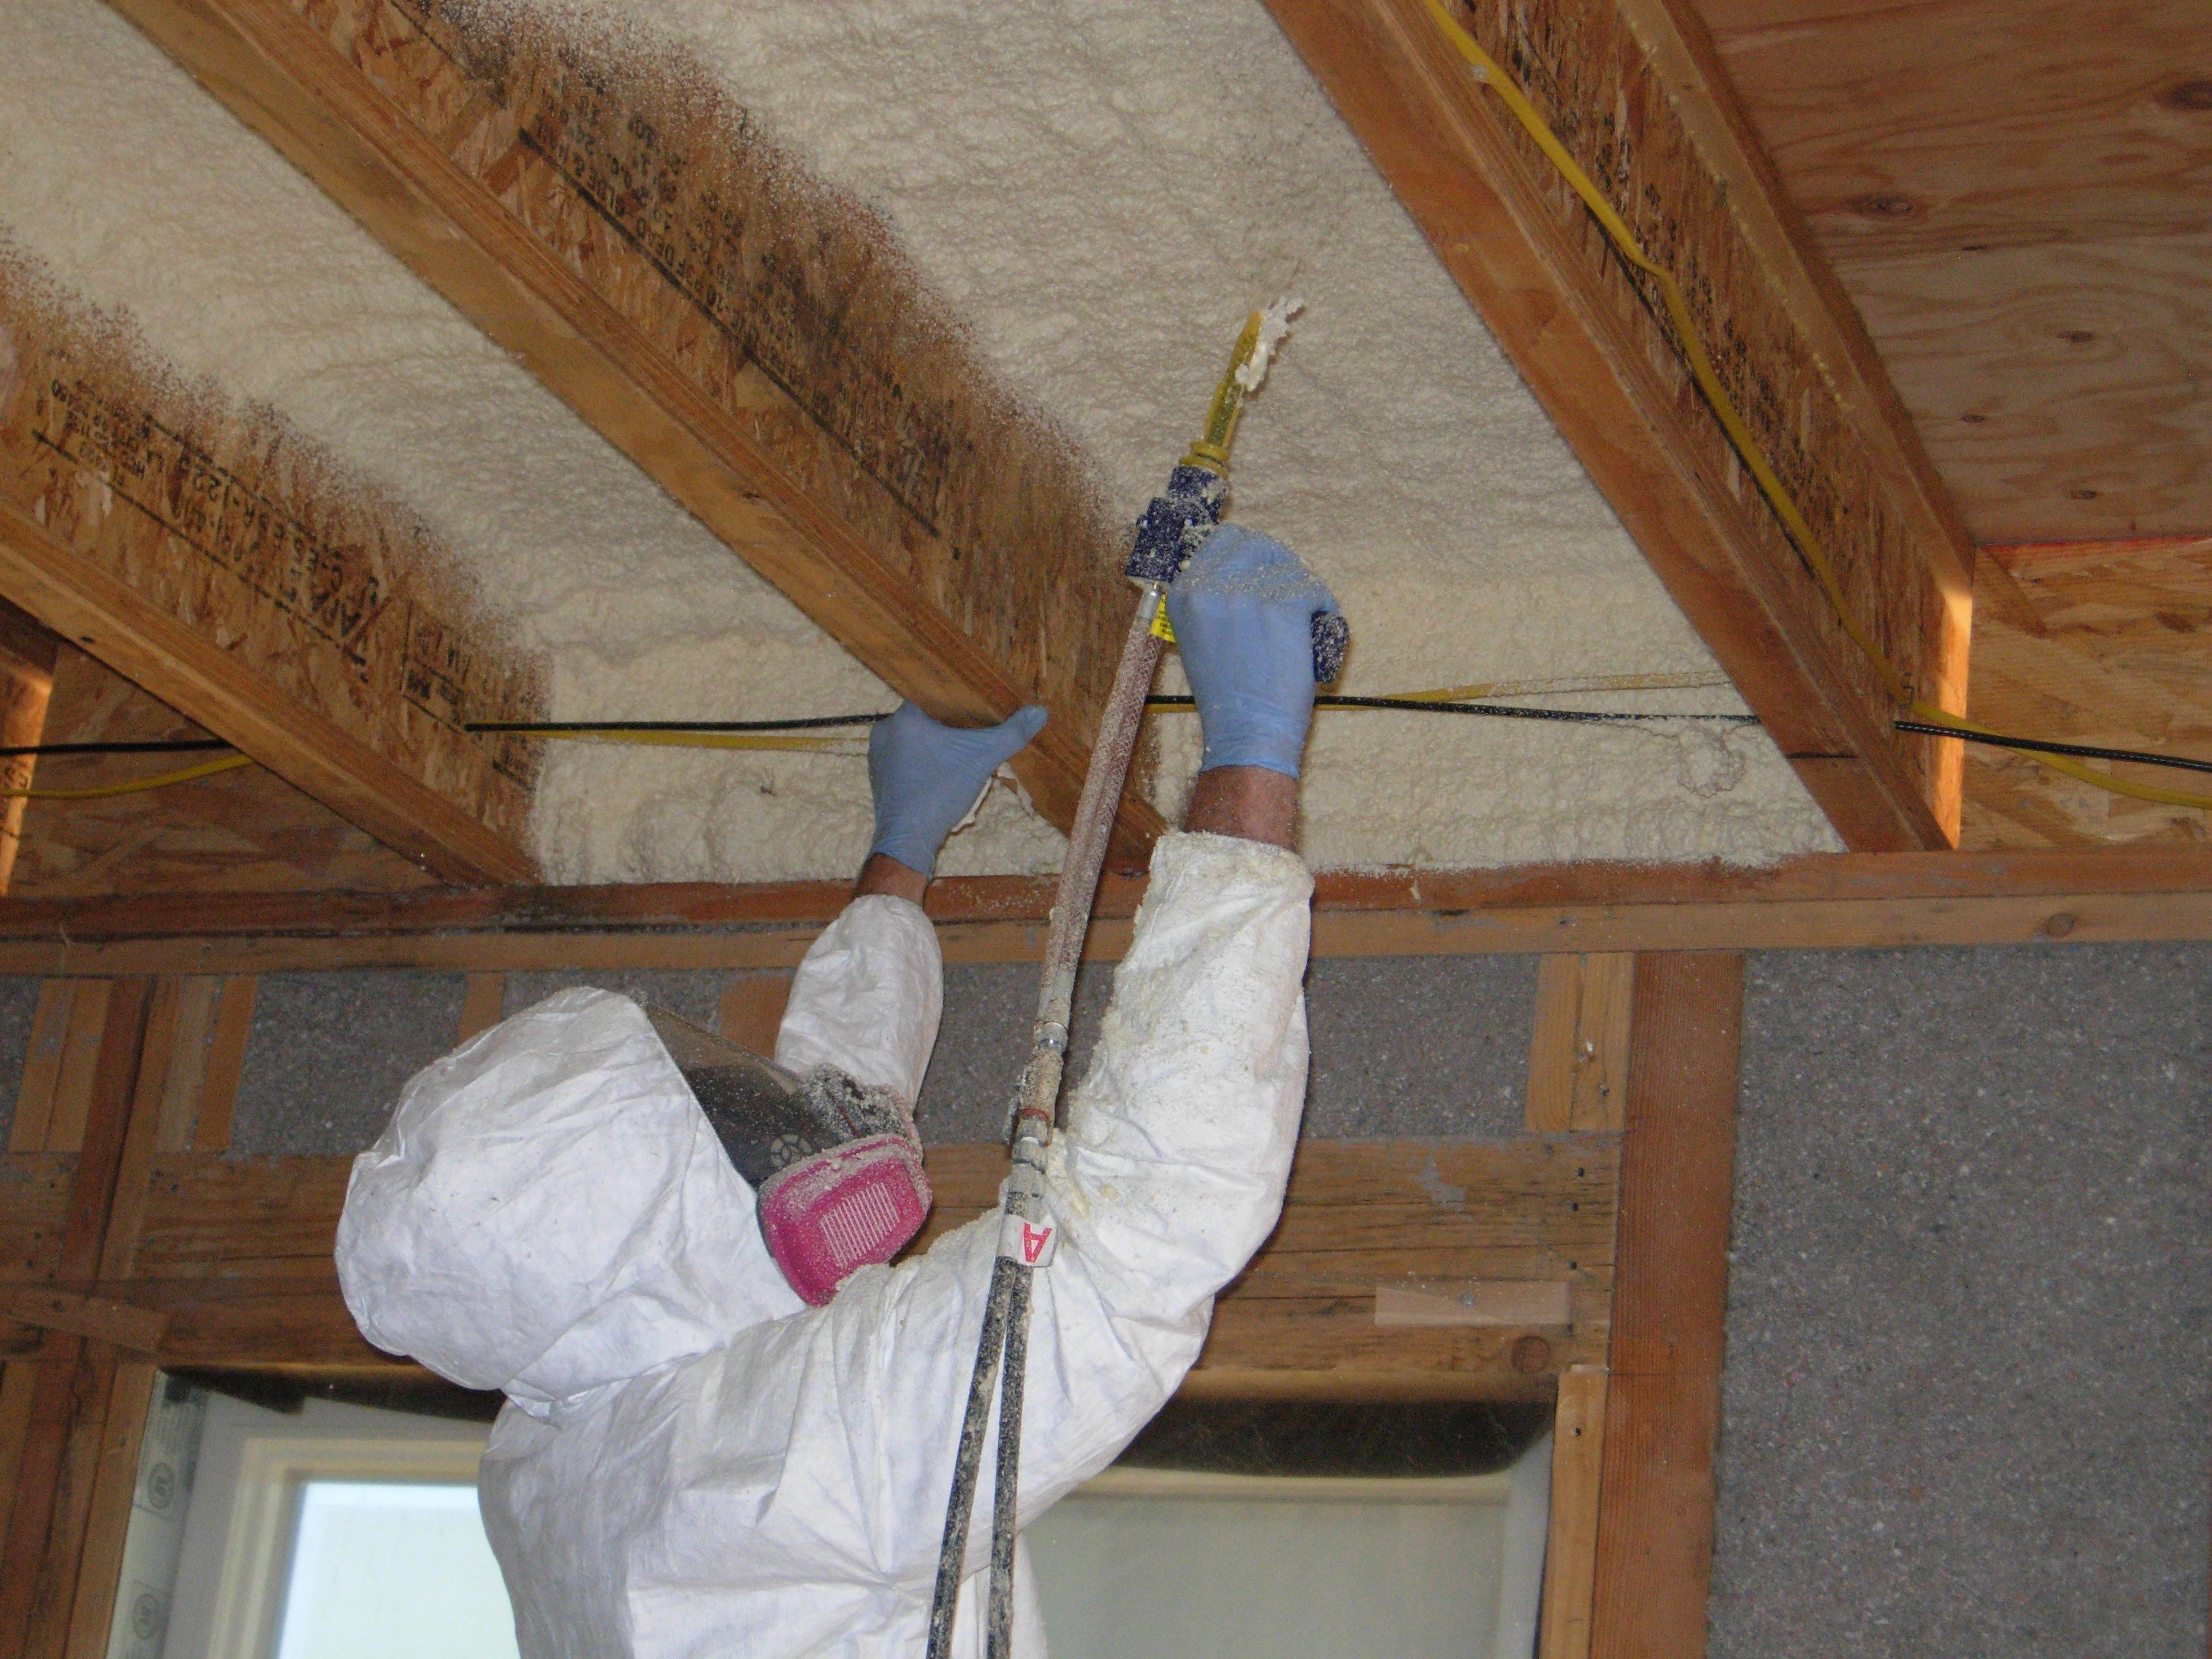 Spray Foam Insulation A Good Option For Flat Roofs And Vaulted Ceilings With No Garage Ceiling Insulation Basement Ceiling Insulation Attic Stair Insulation